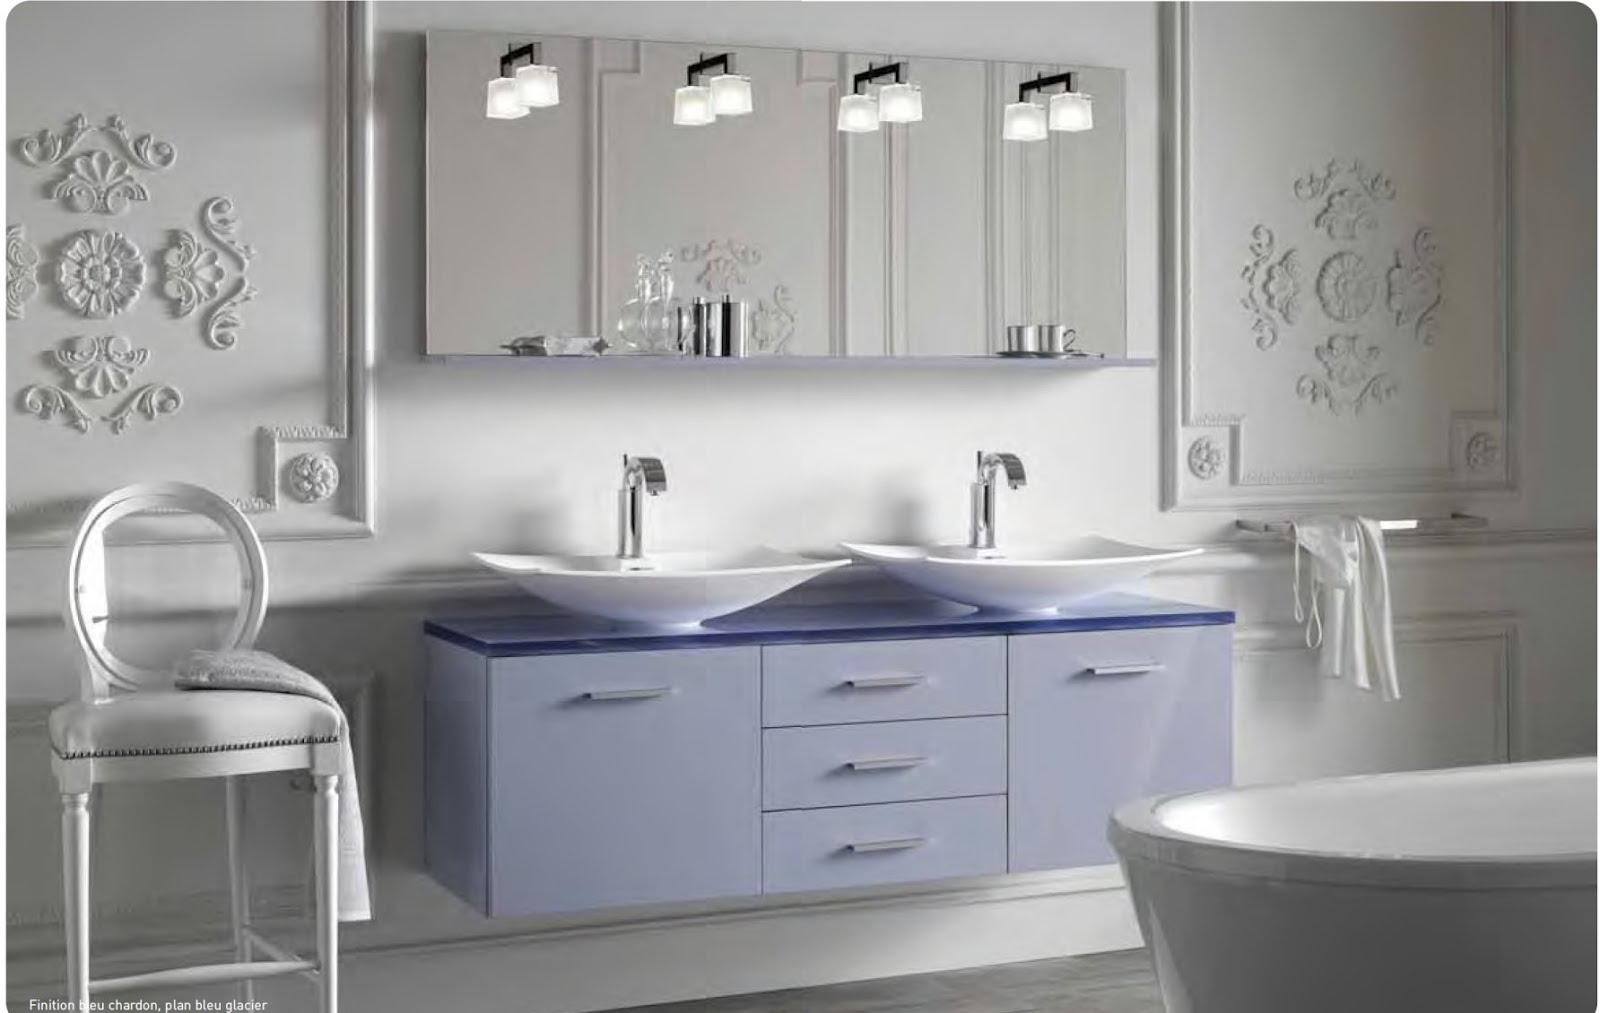 Meuble vasque decotec new york - Decotec salle de bain ...